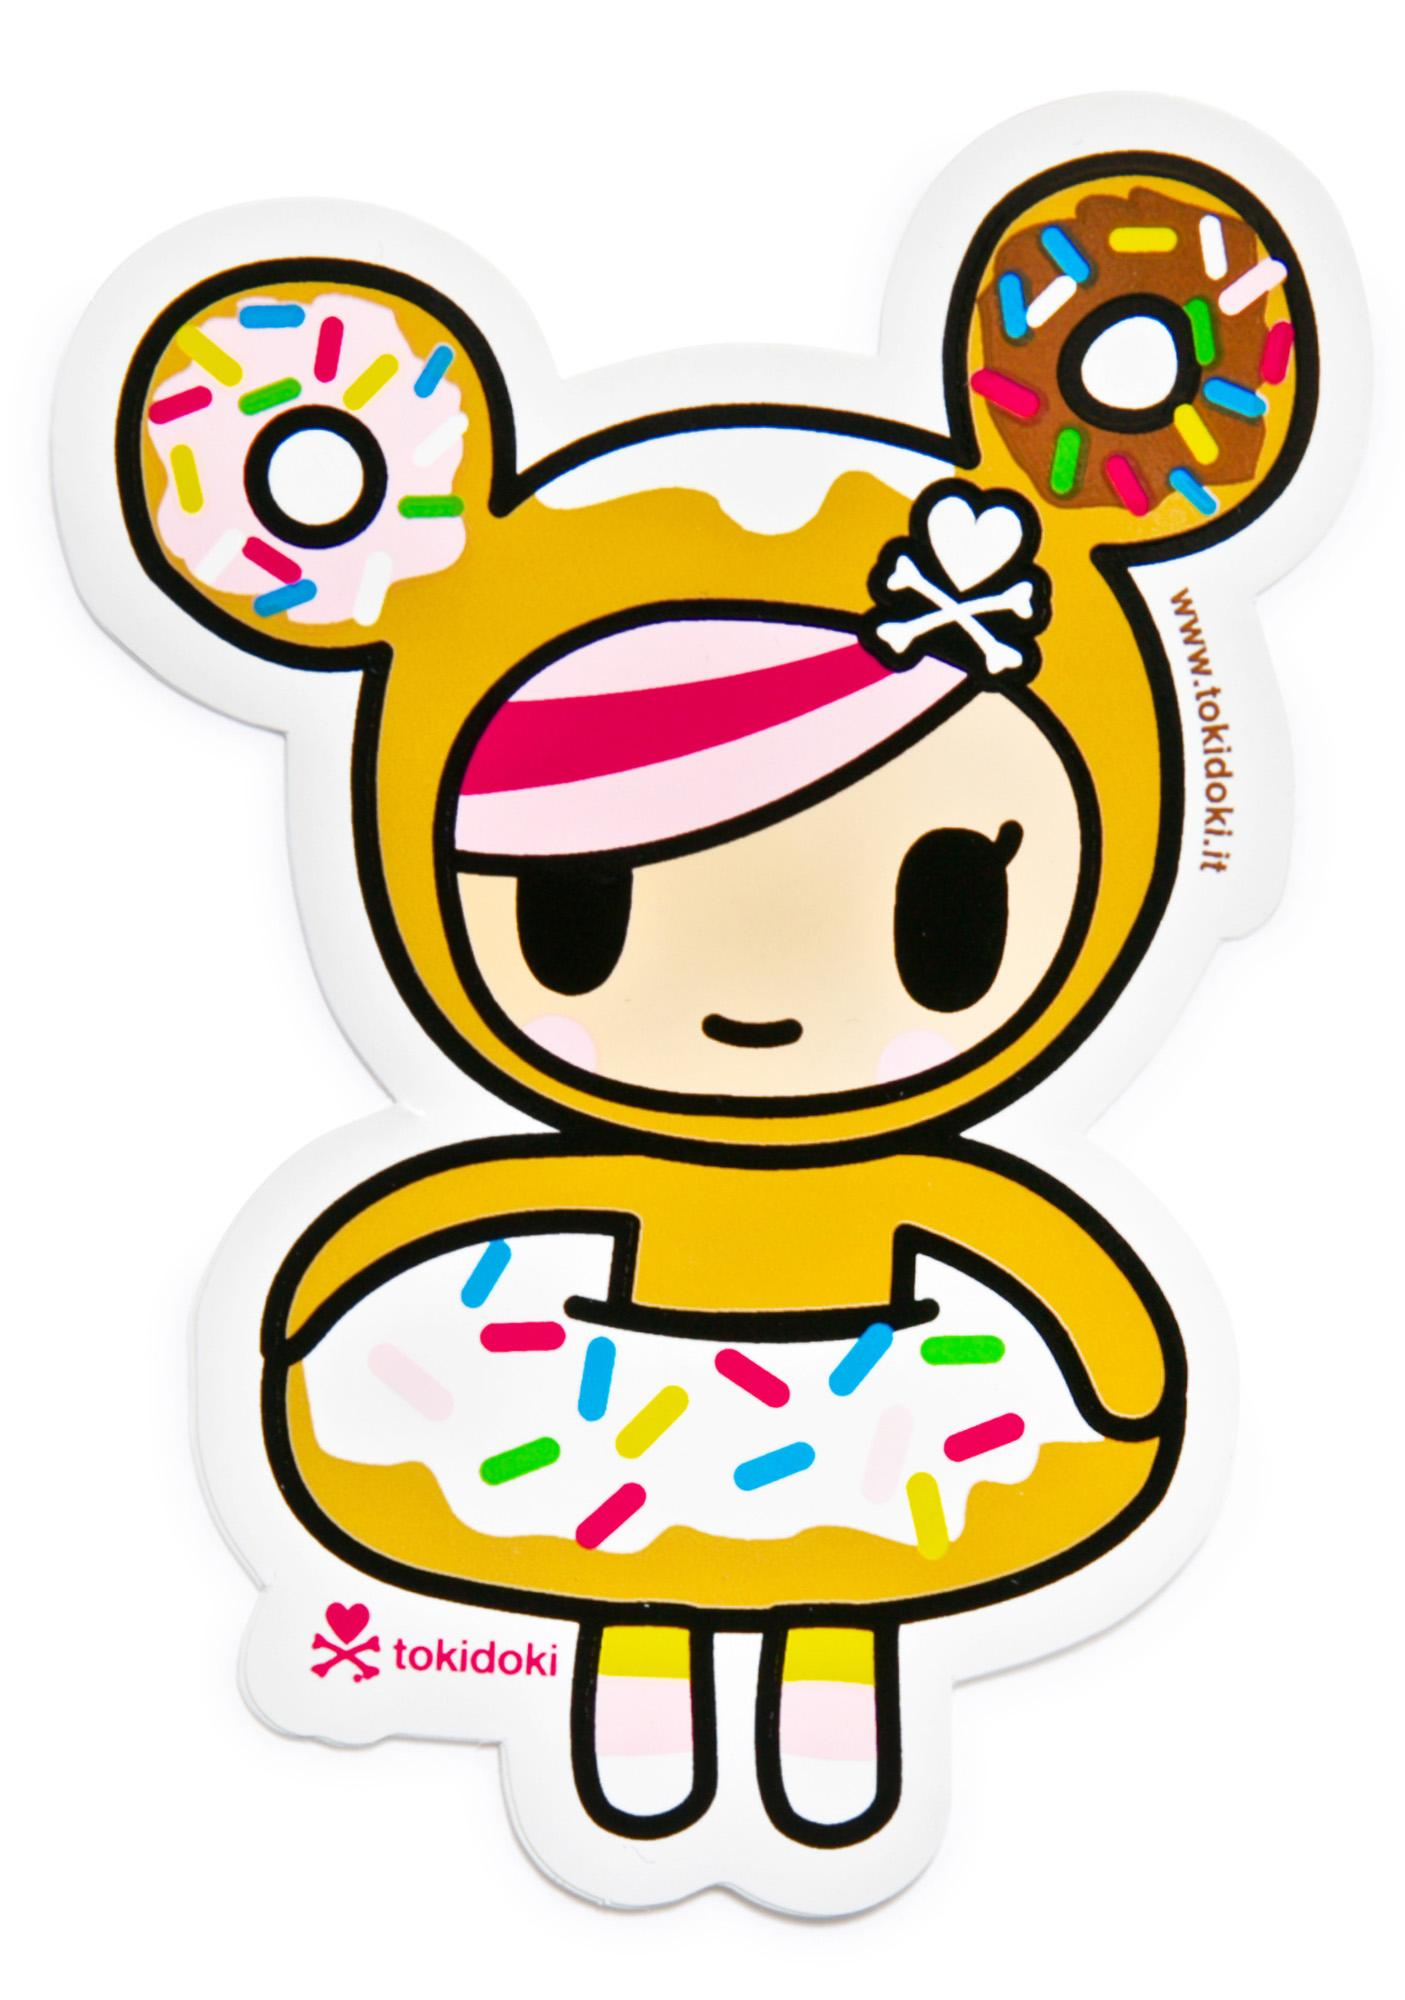 color tokidoki donutella sticker - Tokidoki Donutella Coloring Pages